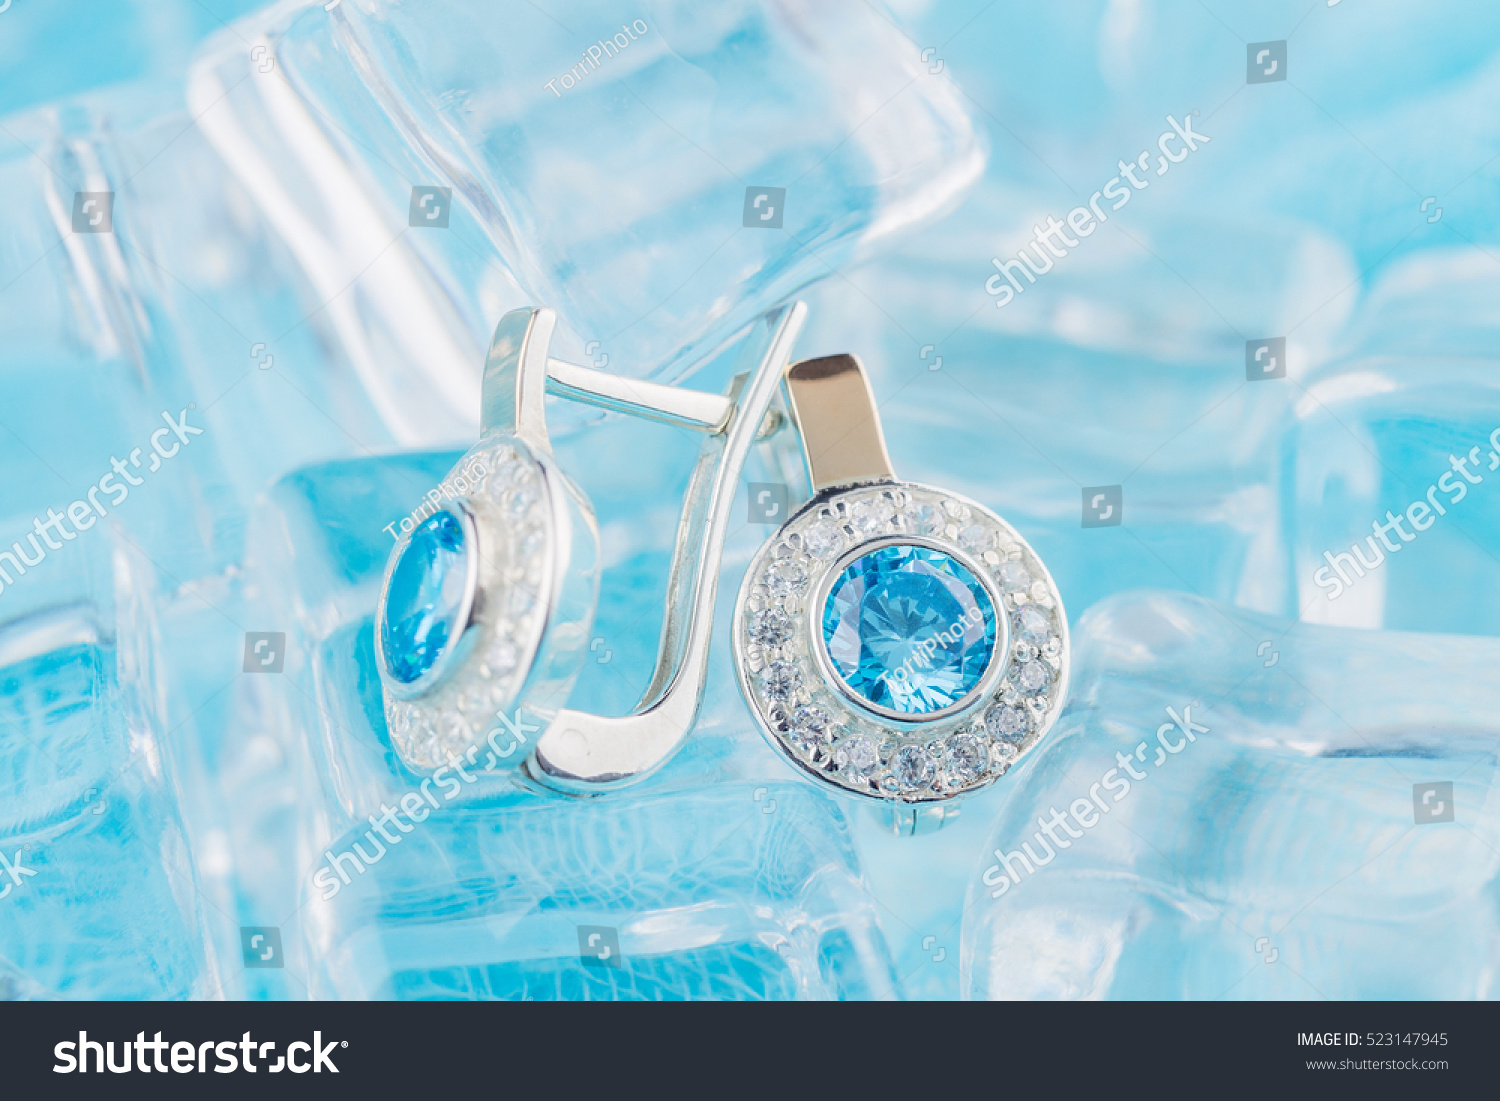 https://www.shutterstock.com/pic-523147945/stock-photo-close-up-earrings-with-zircon-and-expensive-blue-gemstones-still-life-on-ice-blue-background.html